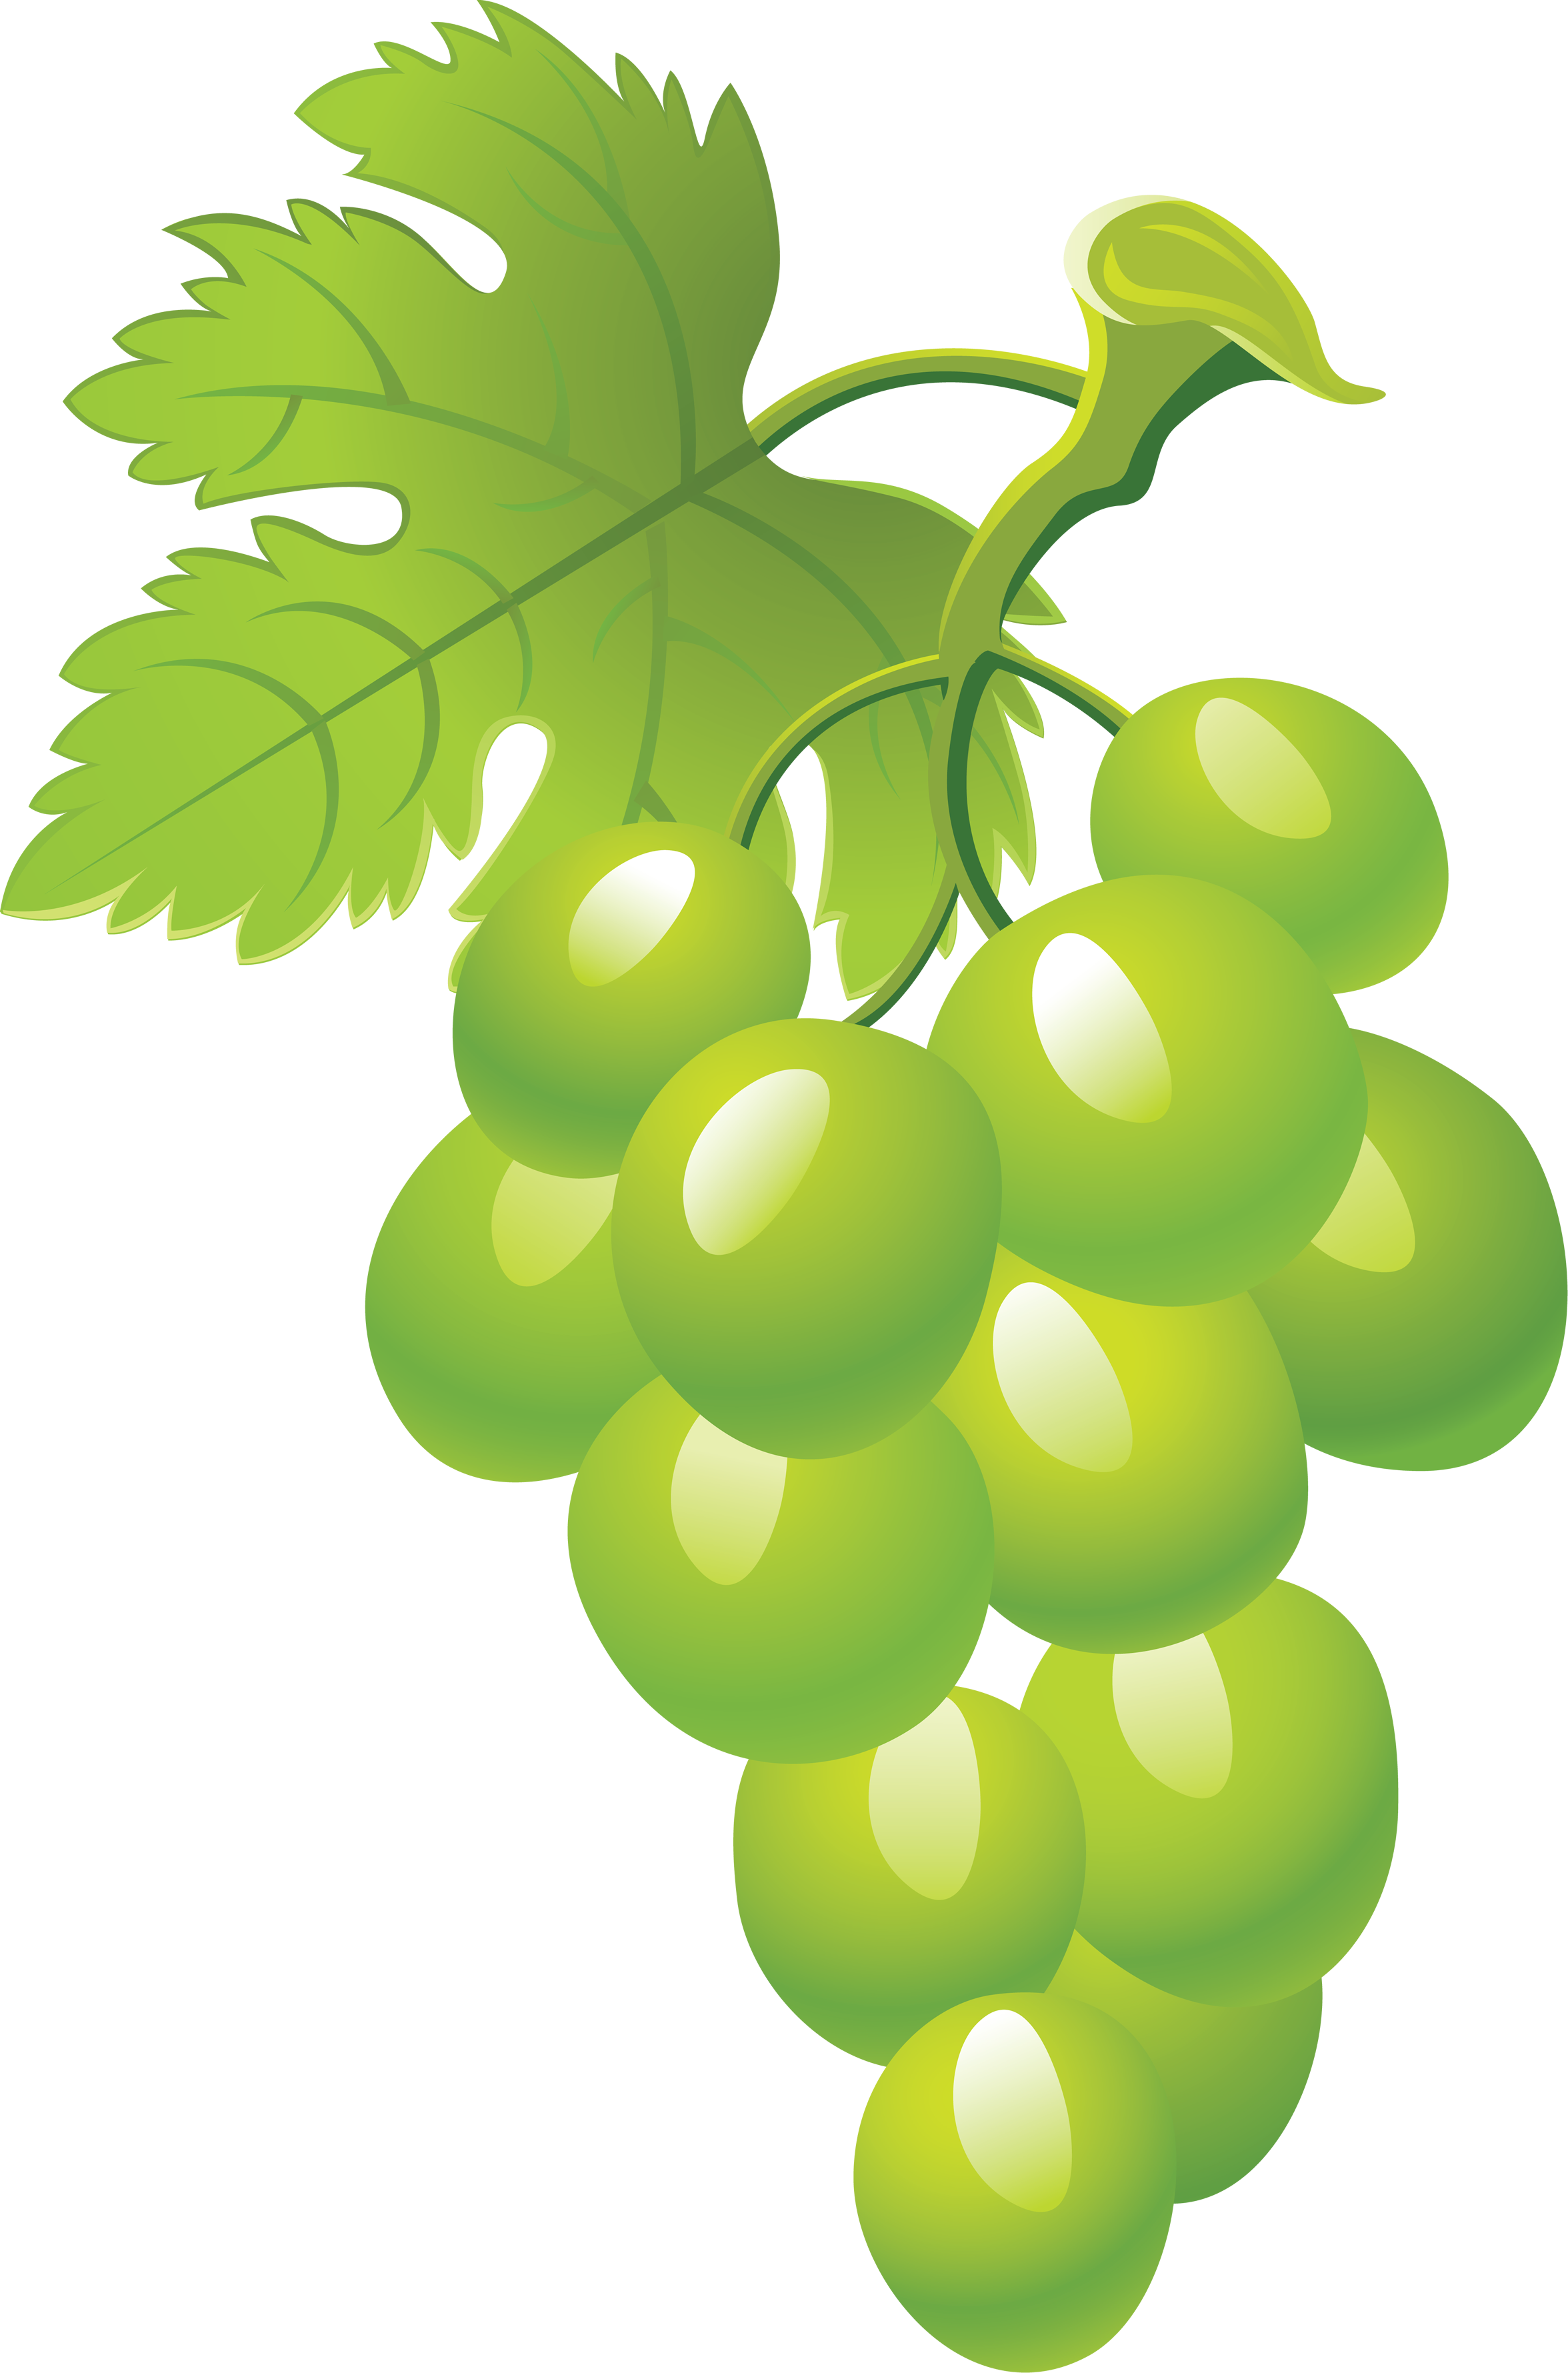 Transparent grapes animated